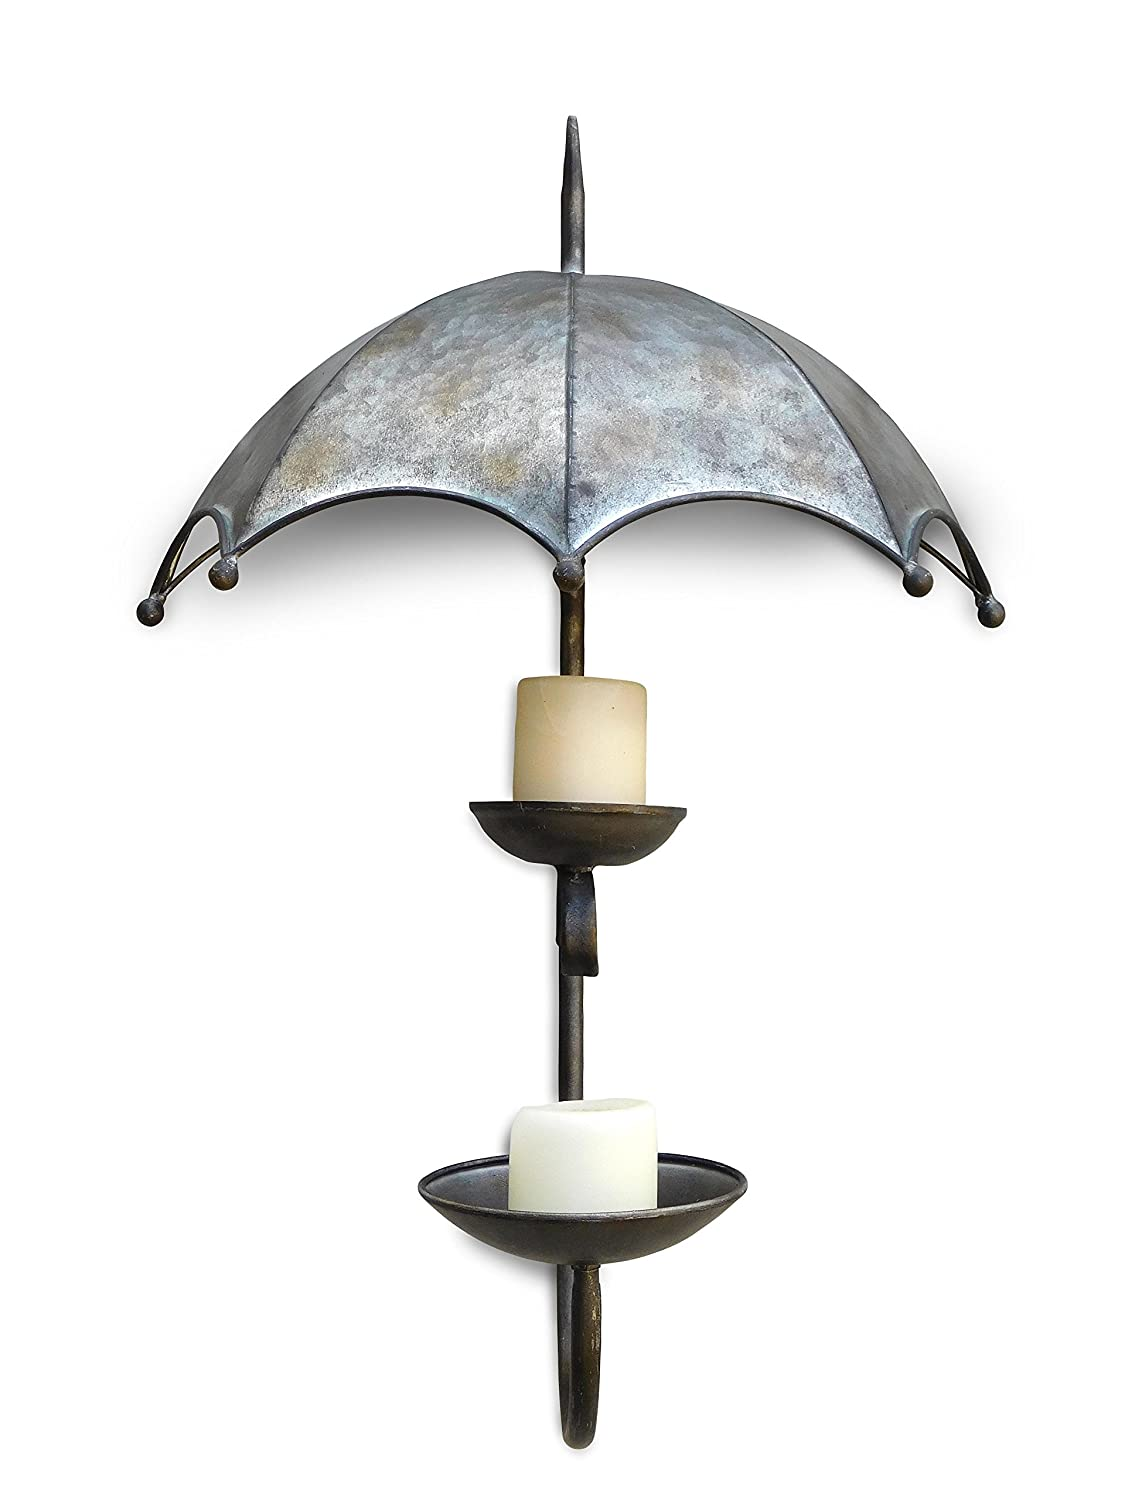 Jpd Plants Harville Wall Mounted Umbrella Candle Holder Amazon Co